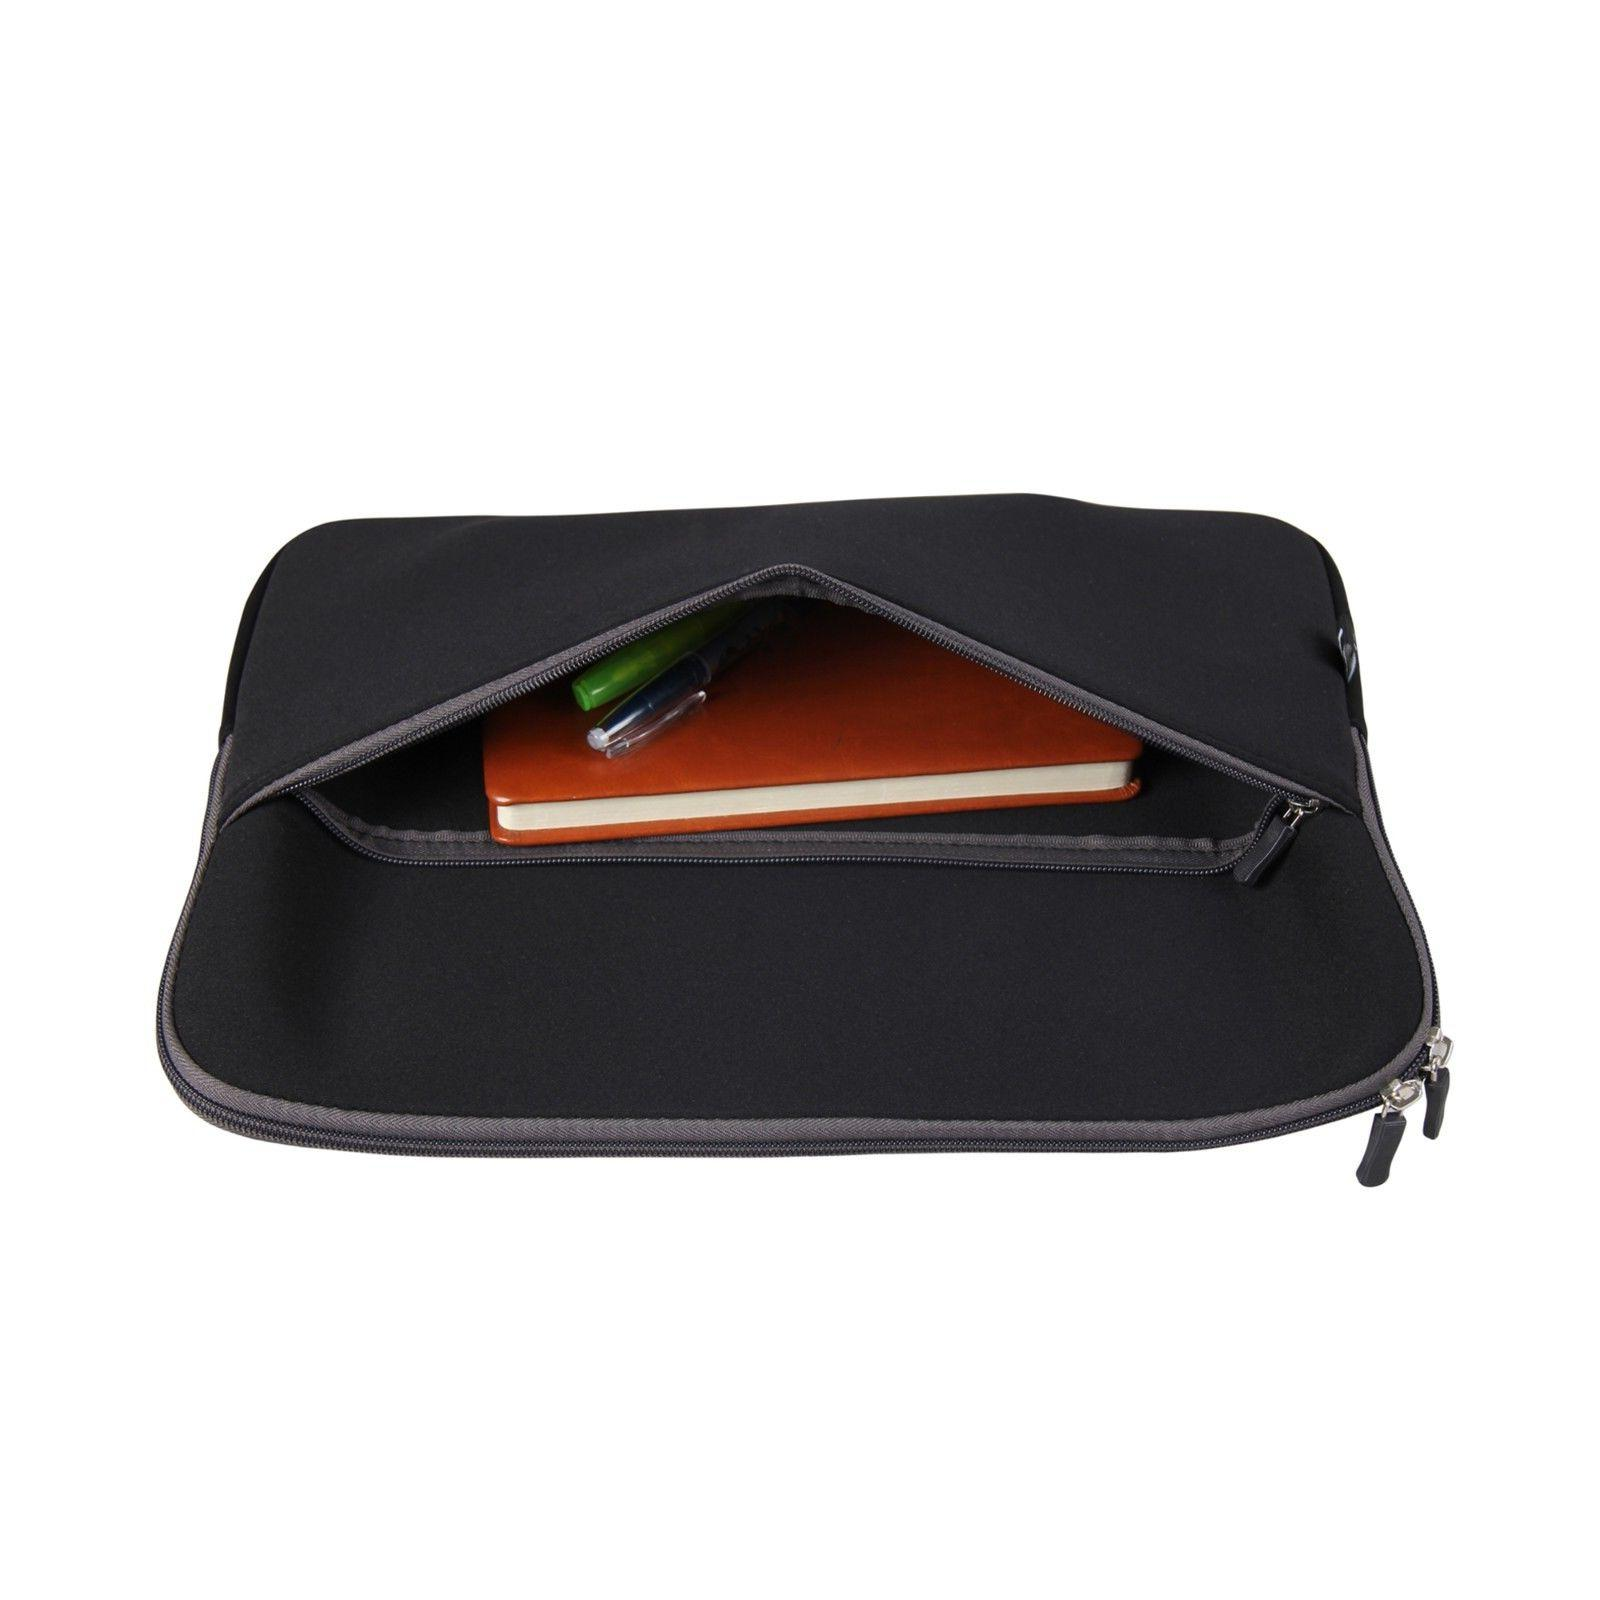 "15"" Soft Sleeve Case for 15.6"" Dell Acer Macbook"